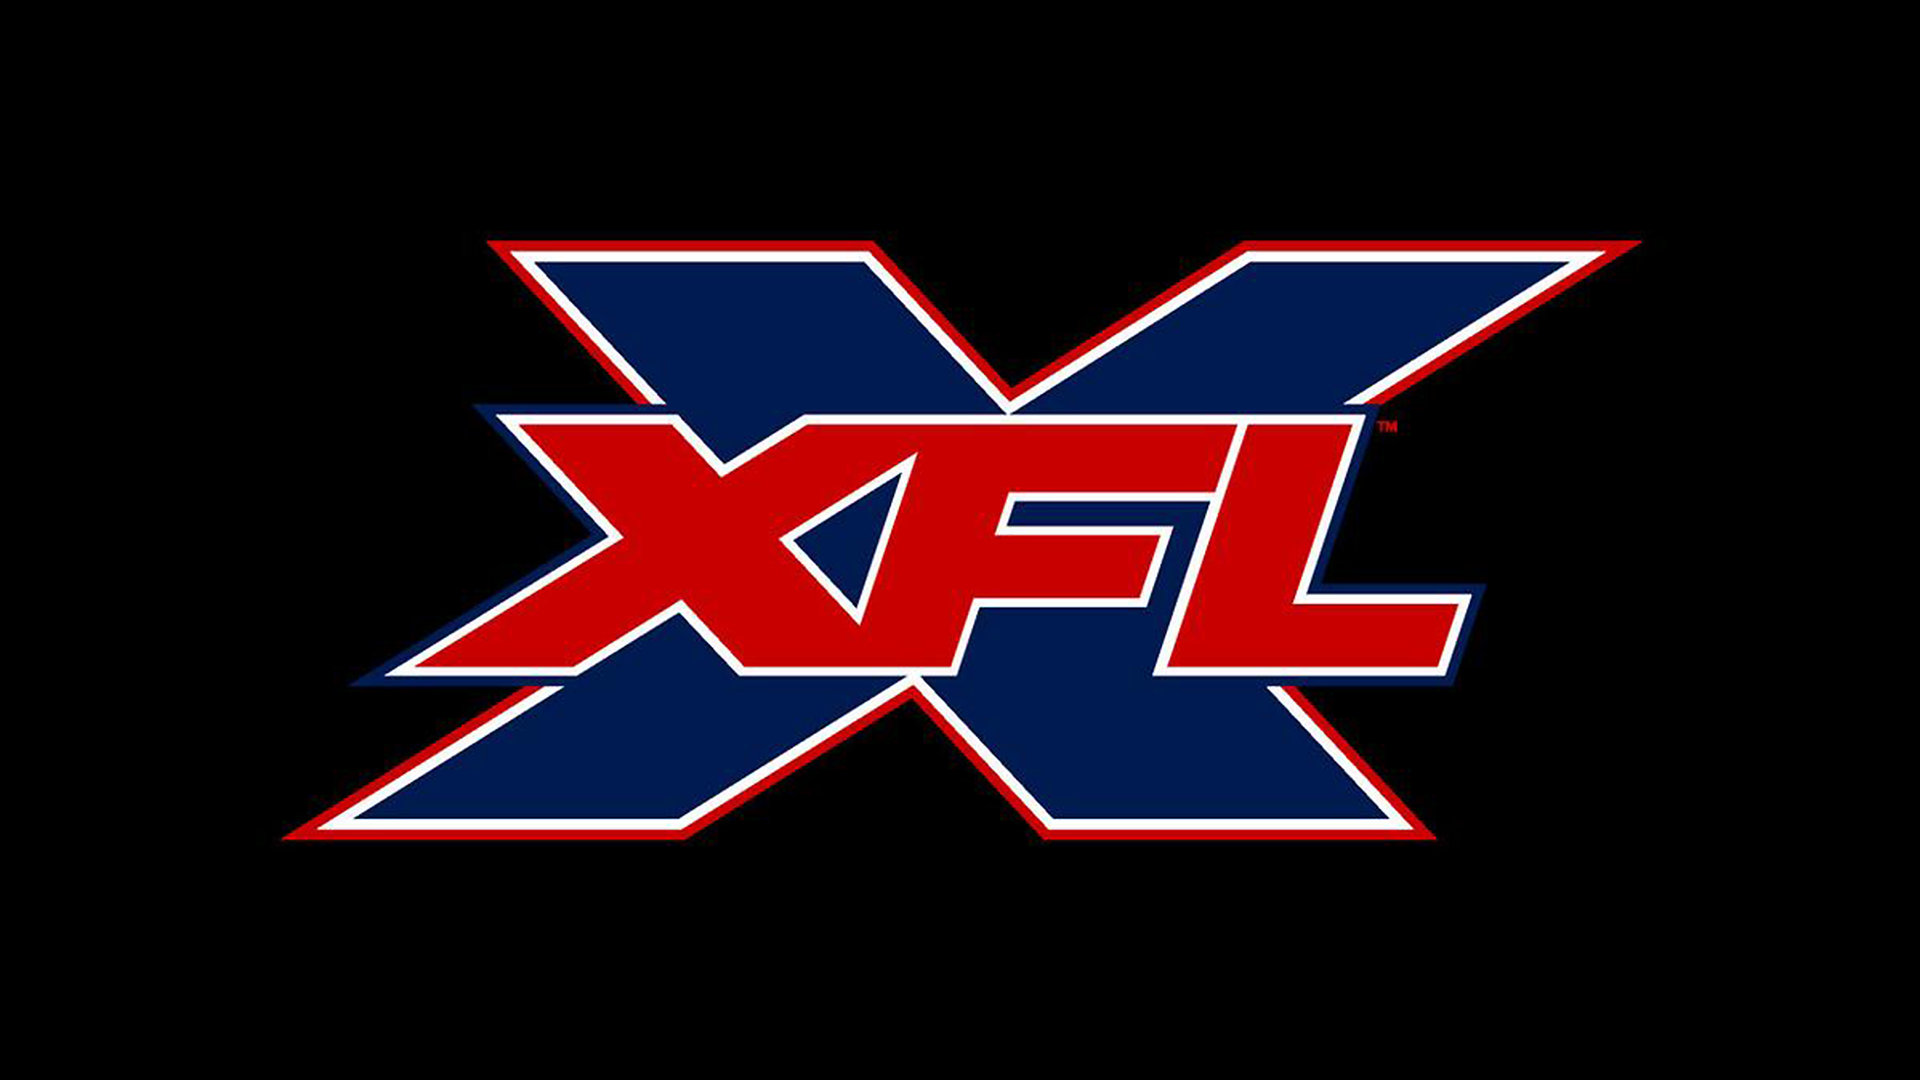 XFL Draft time, player pool, pick order & more: A guide to how the 2019 XFL Draft will work